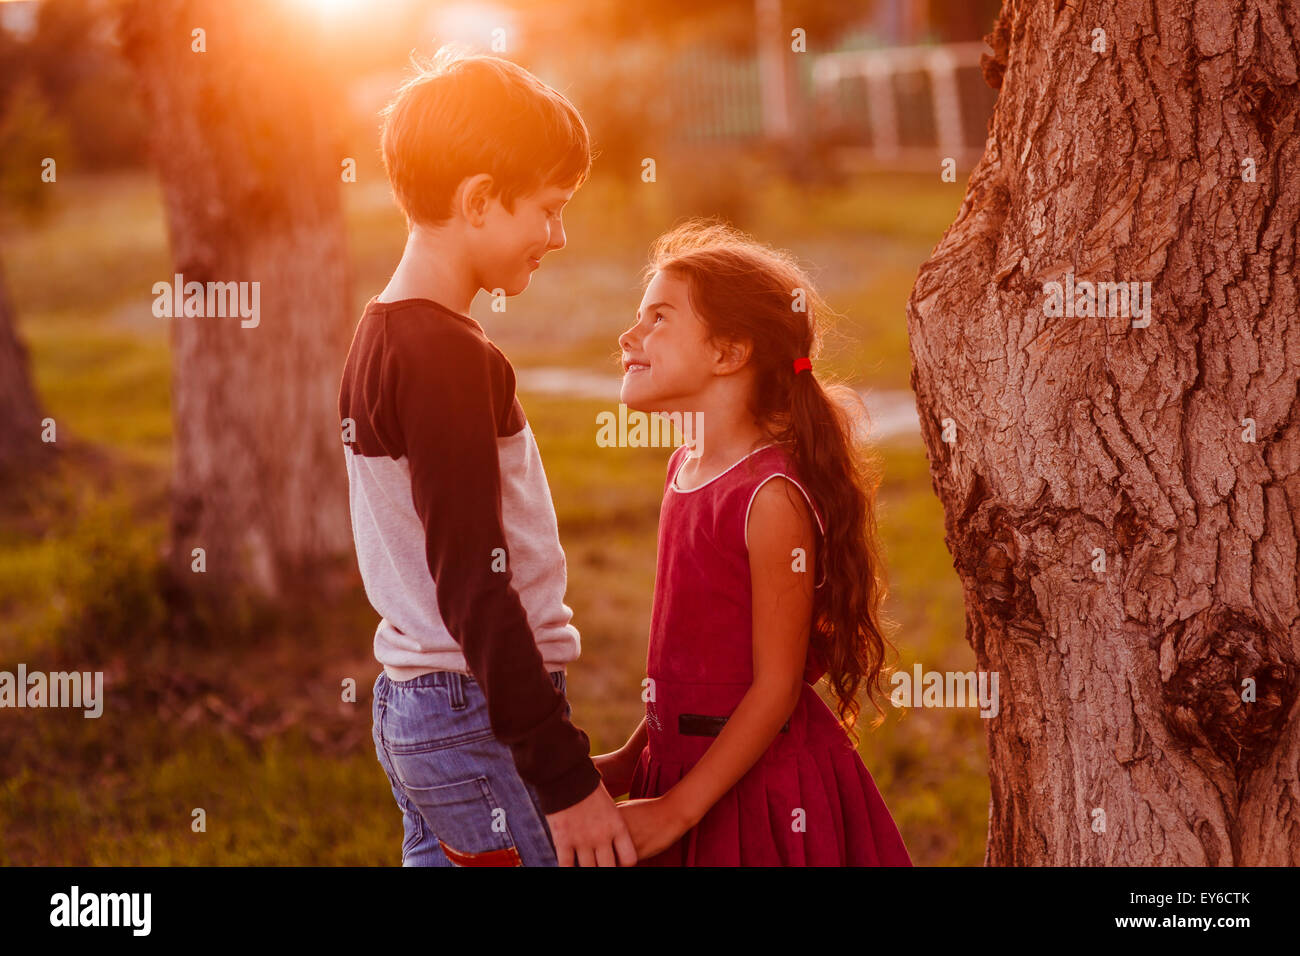 dating friendship love A romantic friendship or passionate friendship is a very close but typically non-sexual  casual dating courtly love cross-sex friendship dating emotional affair.